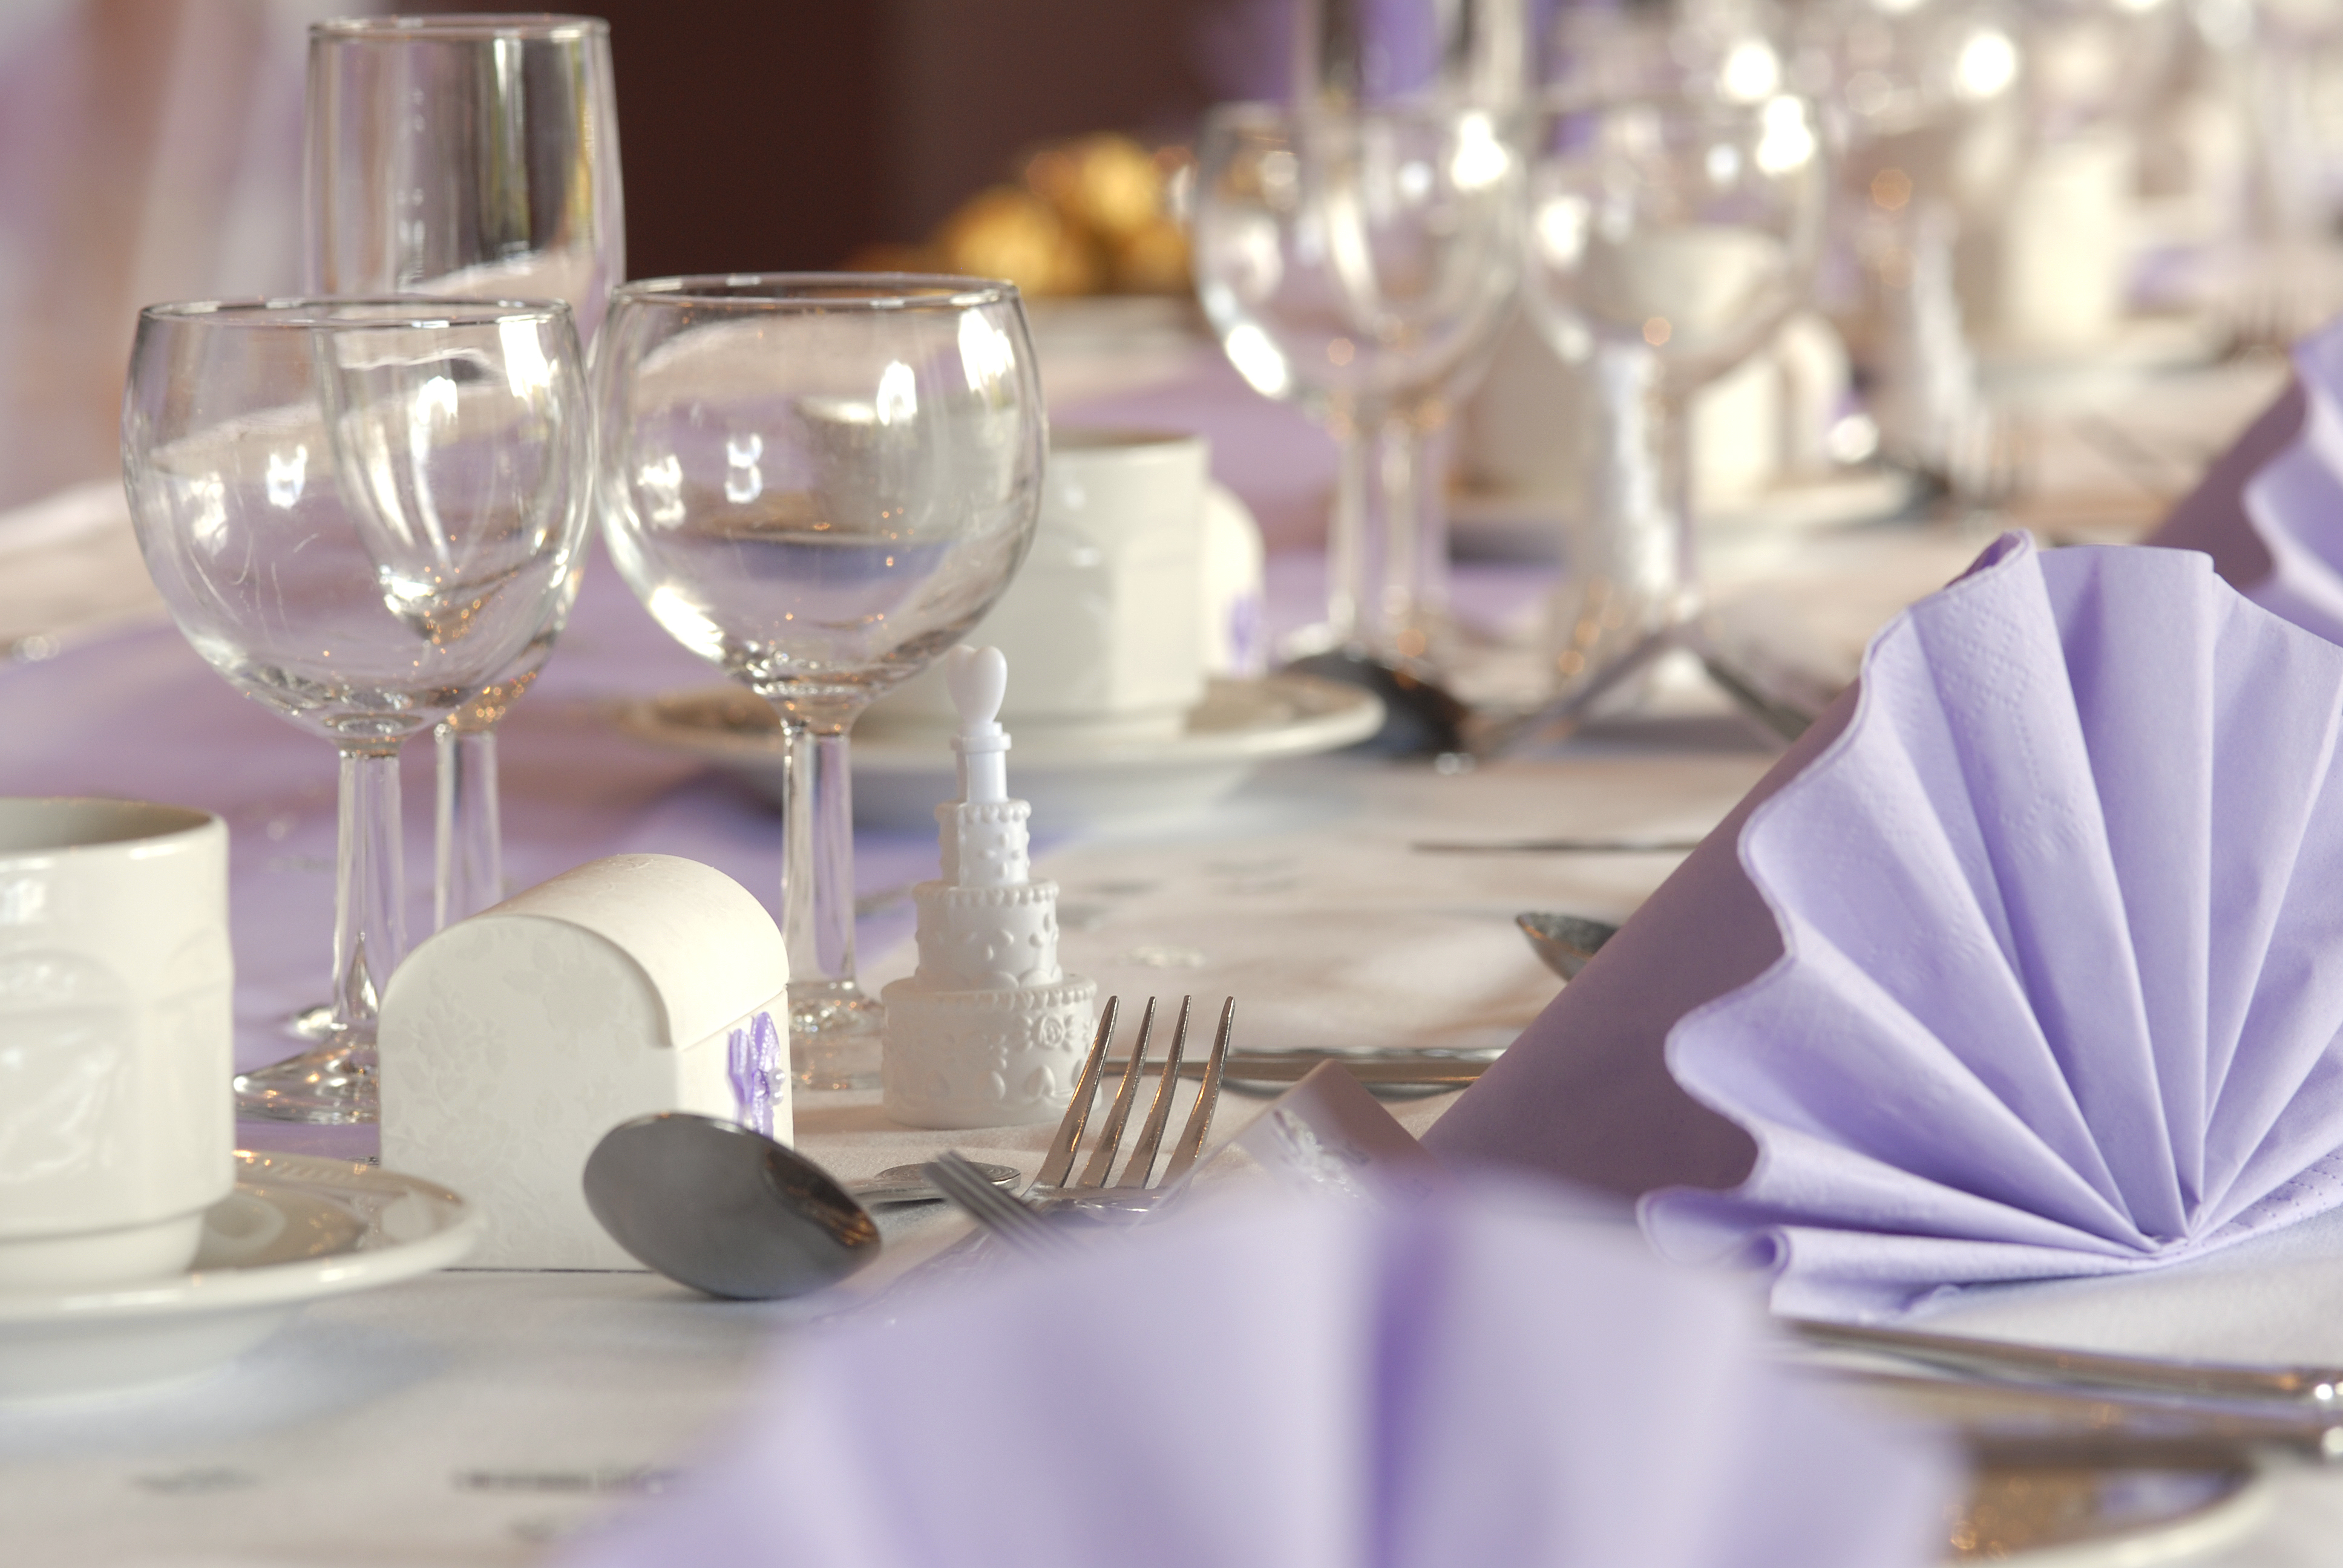 Three Counties Hotel Hereford - Weddings and banqueting